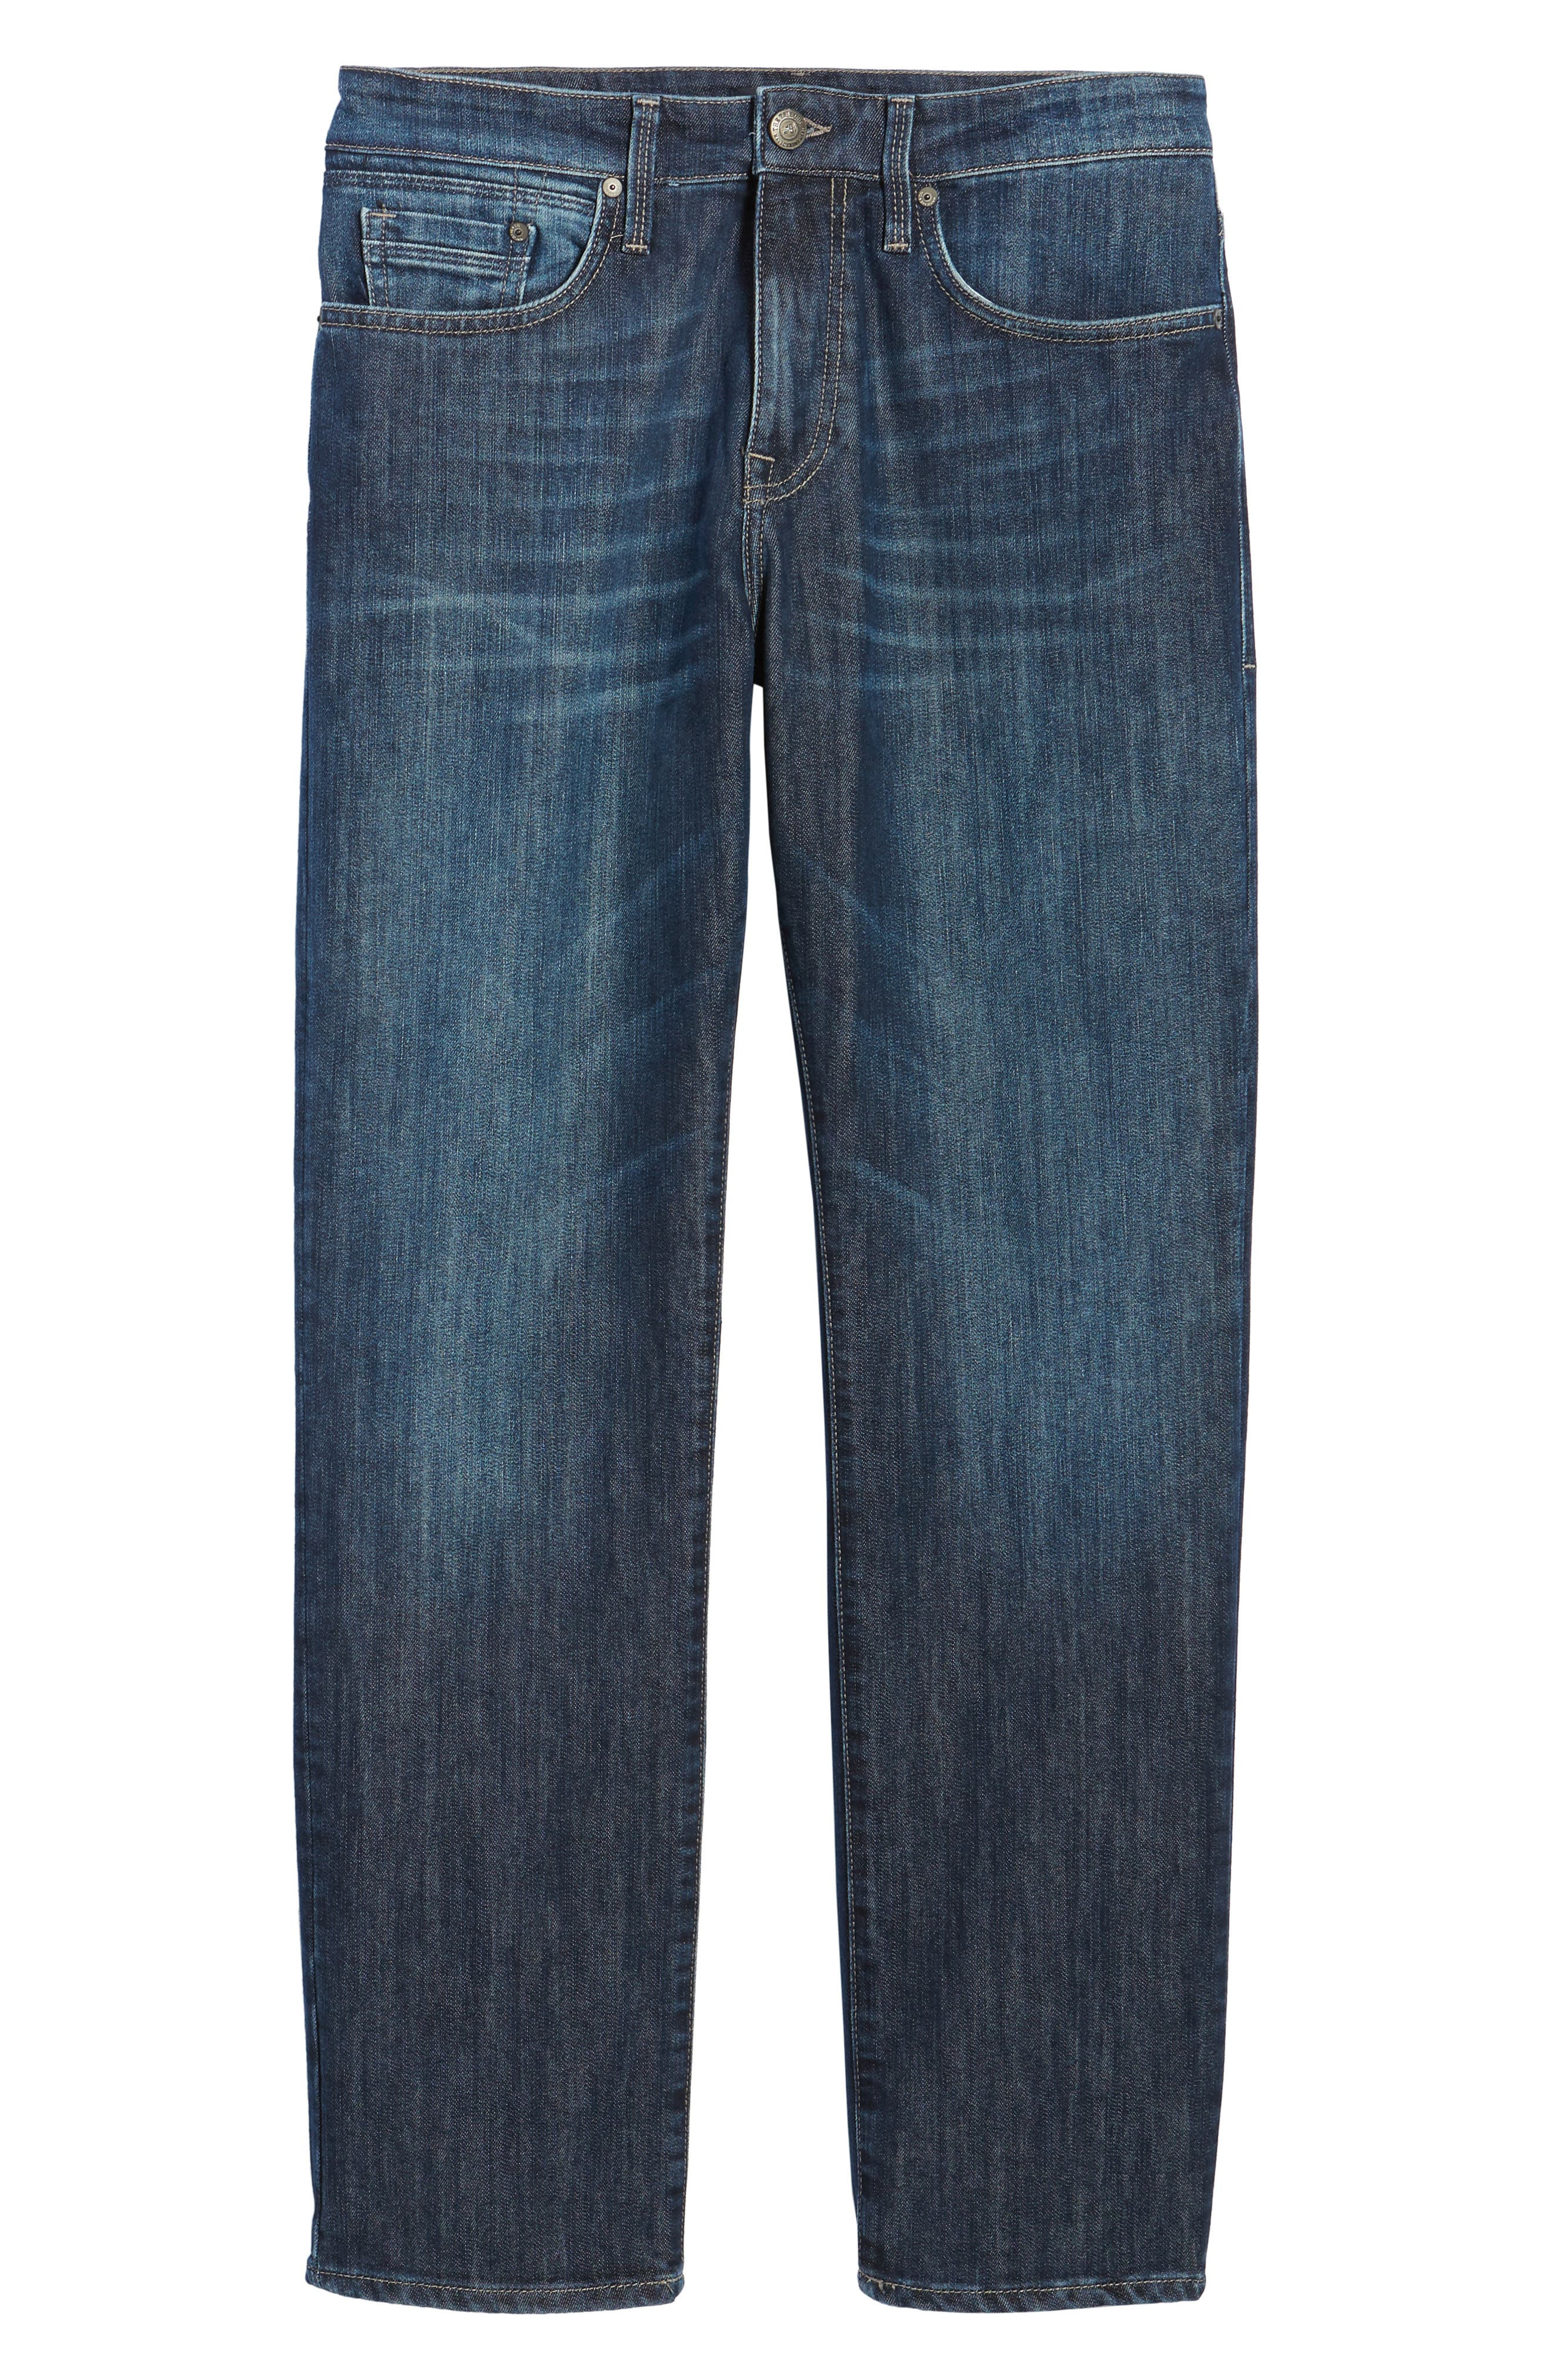 Myles Straight Leg Jeans,                             Alternate thumbnail 6, color,                             Deep Brushed Stanford